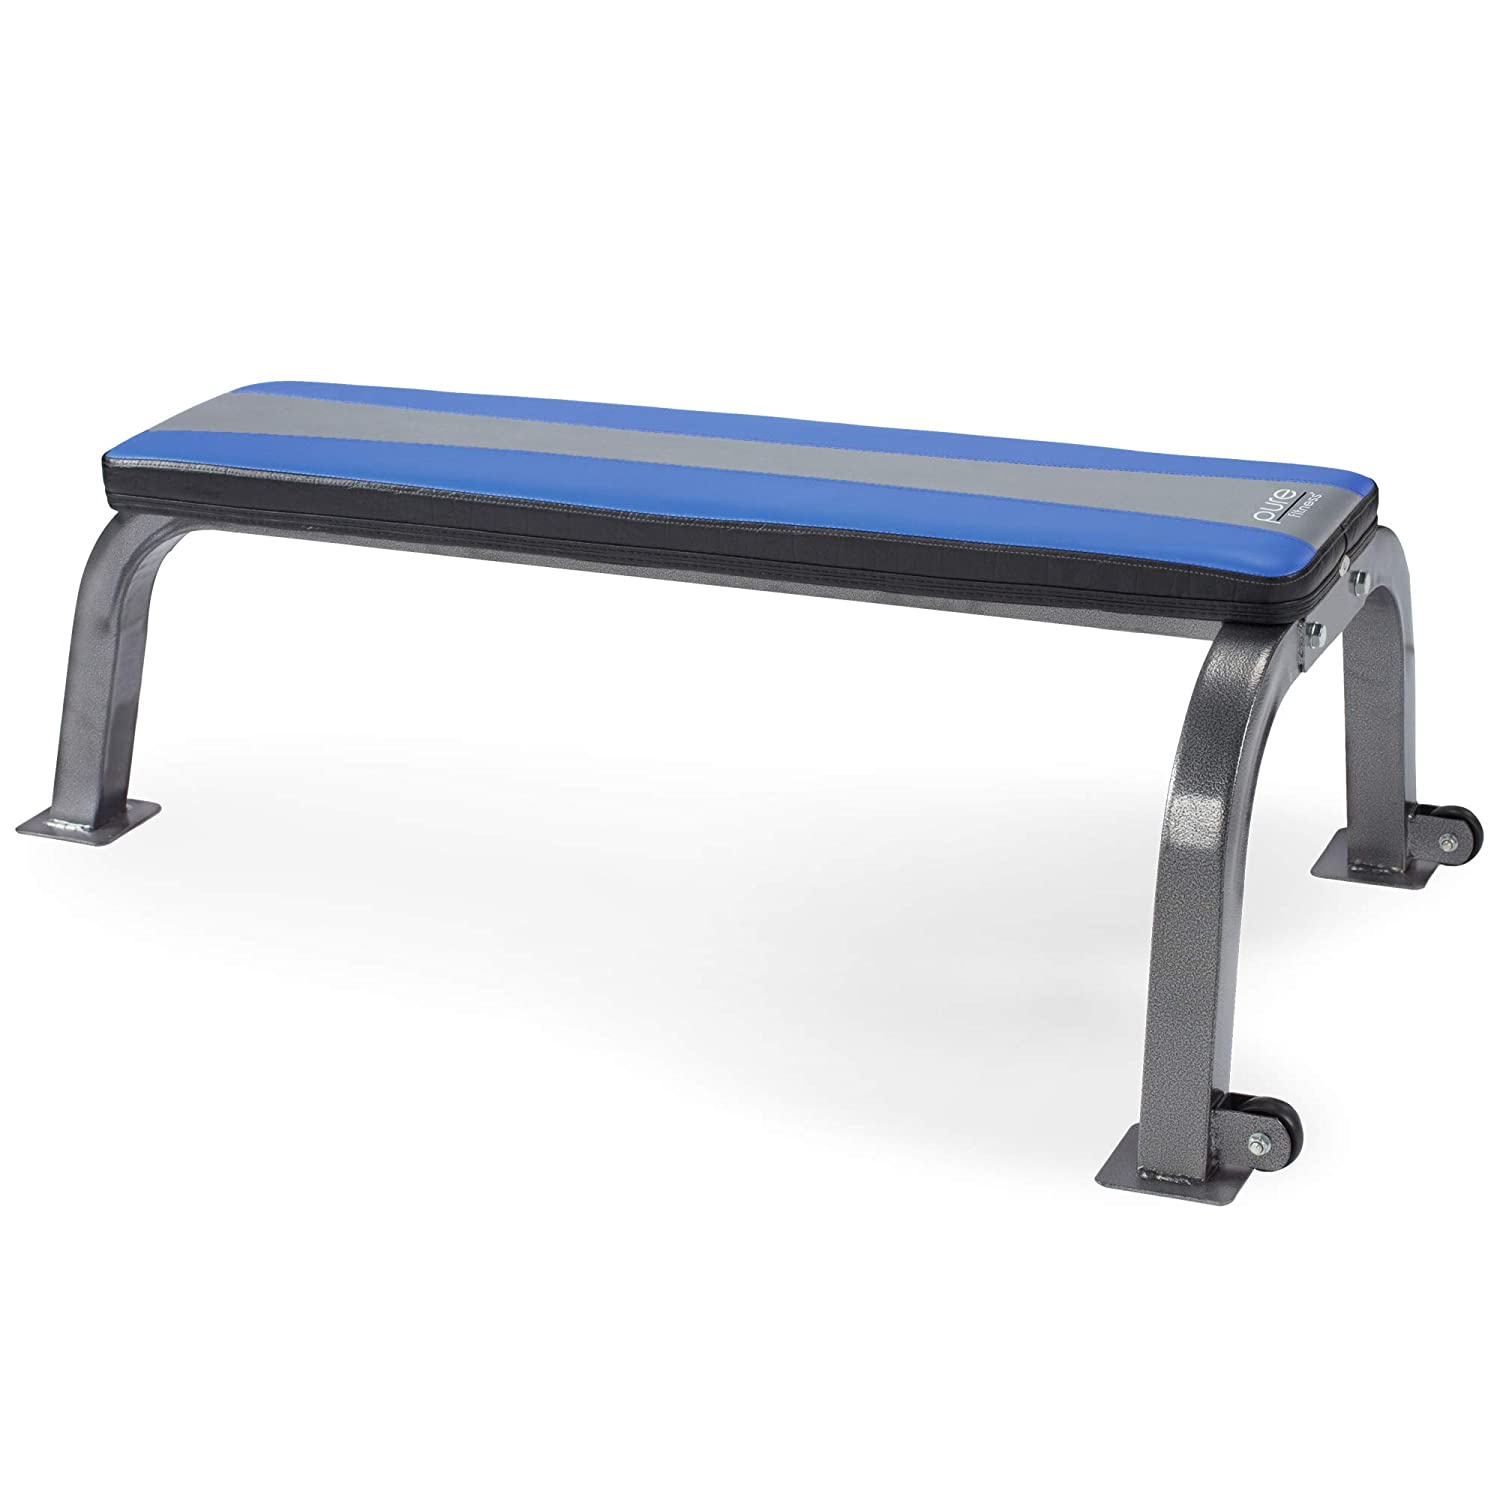 Pure Fitness Weight Training/Workout: Flat Utility Bench, Blue/Black 8641FB